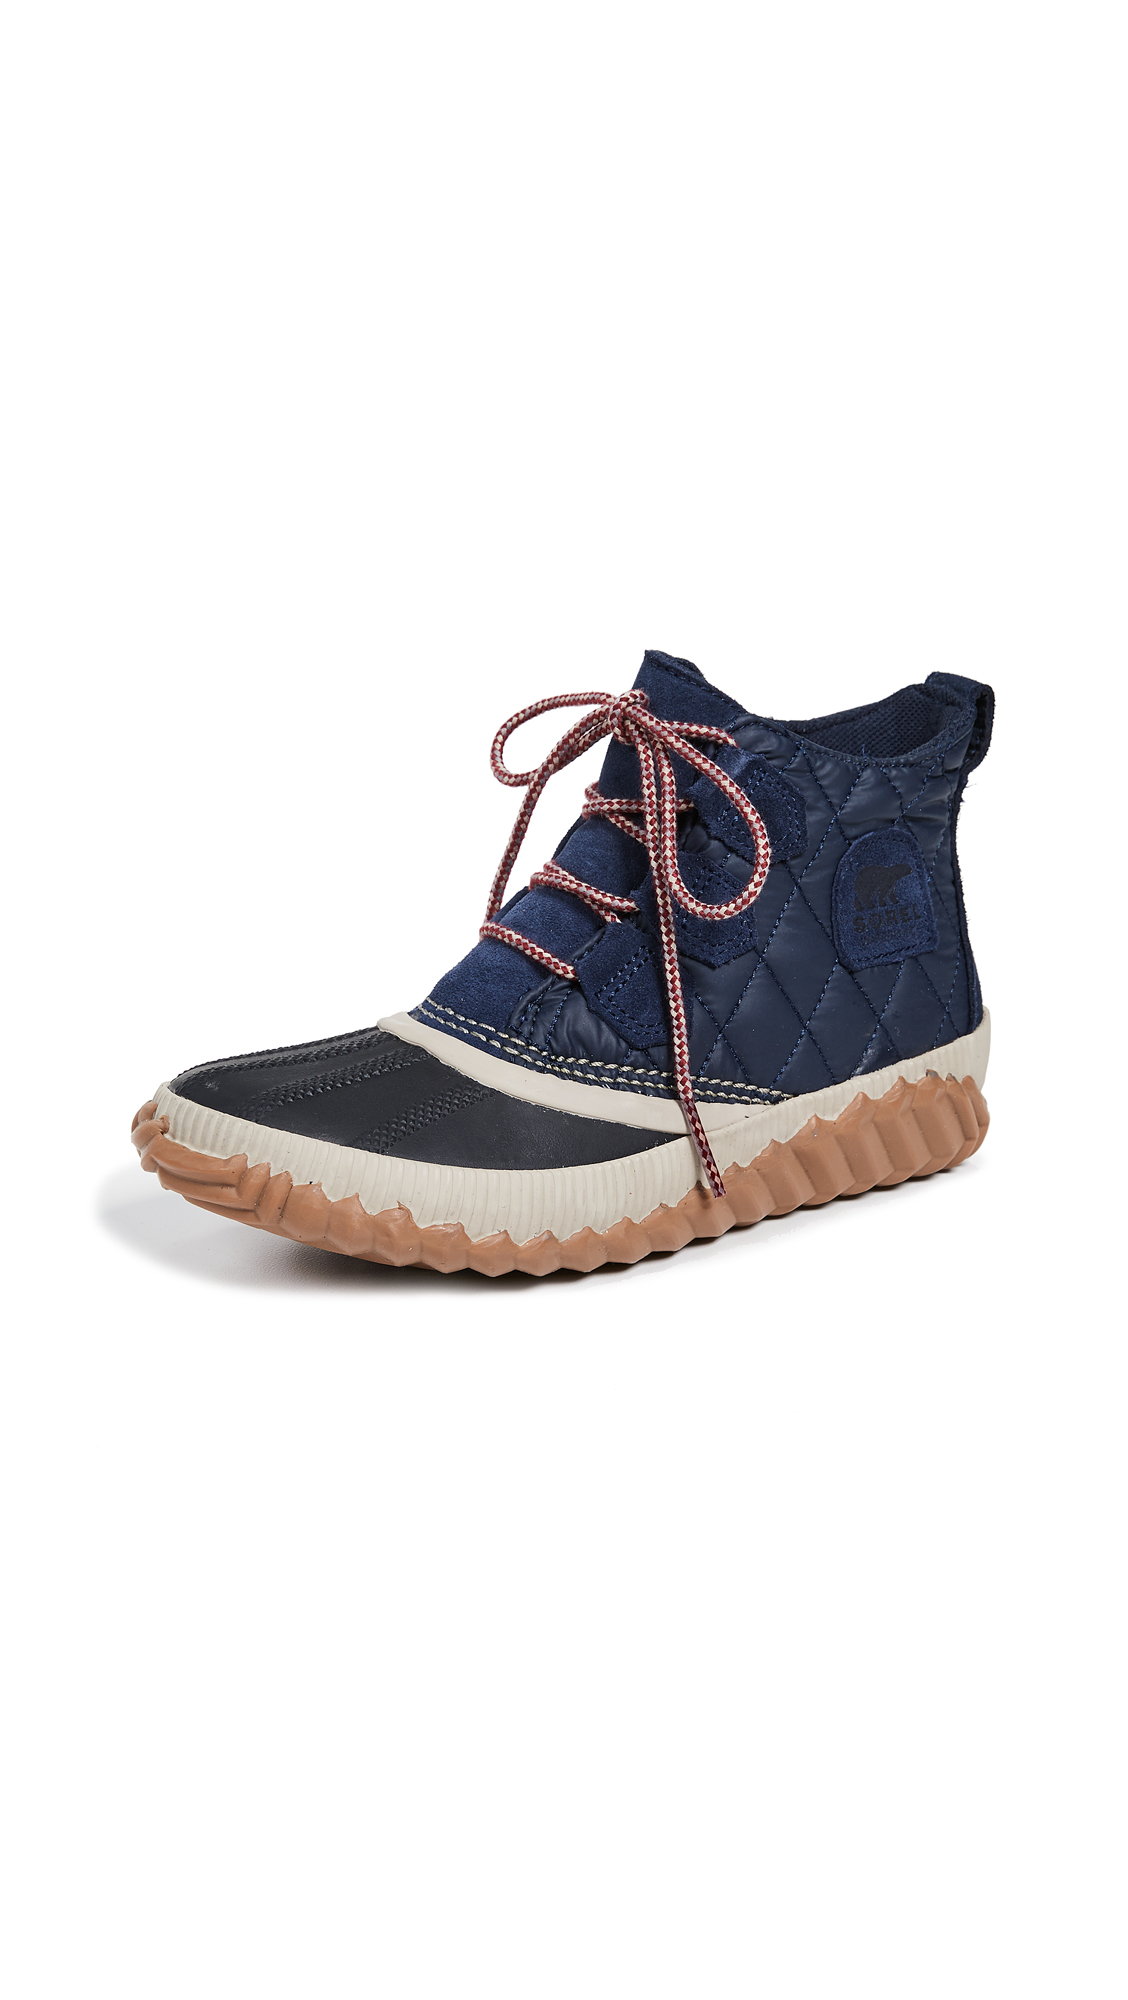 Sorel Out n About Plus Boots - Camp/Collegiate Navy